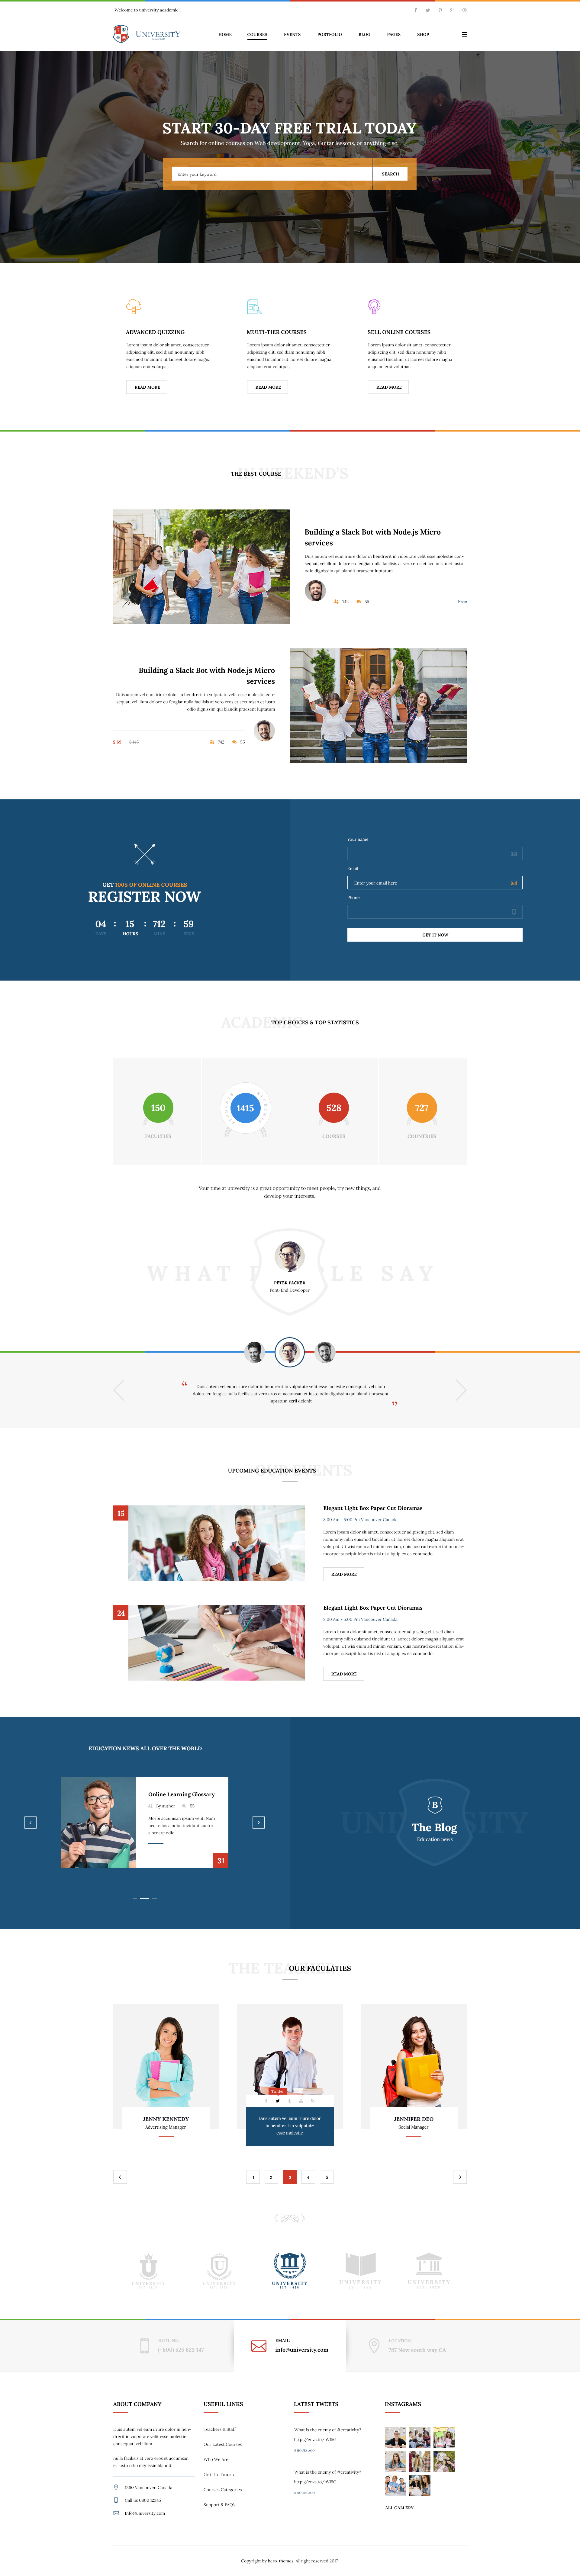 University education course academy psd templates by tivatheme preview05 homepage v5g reheart Gallery